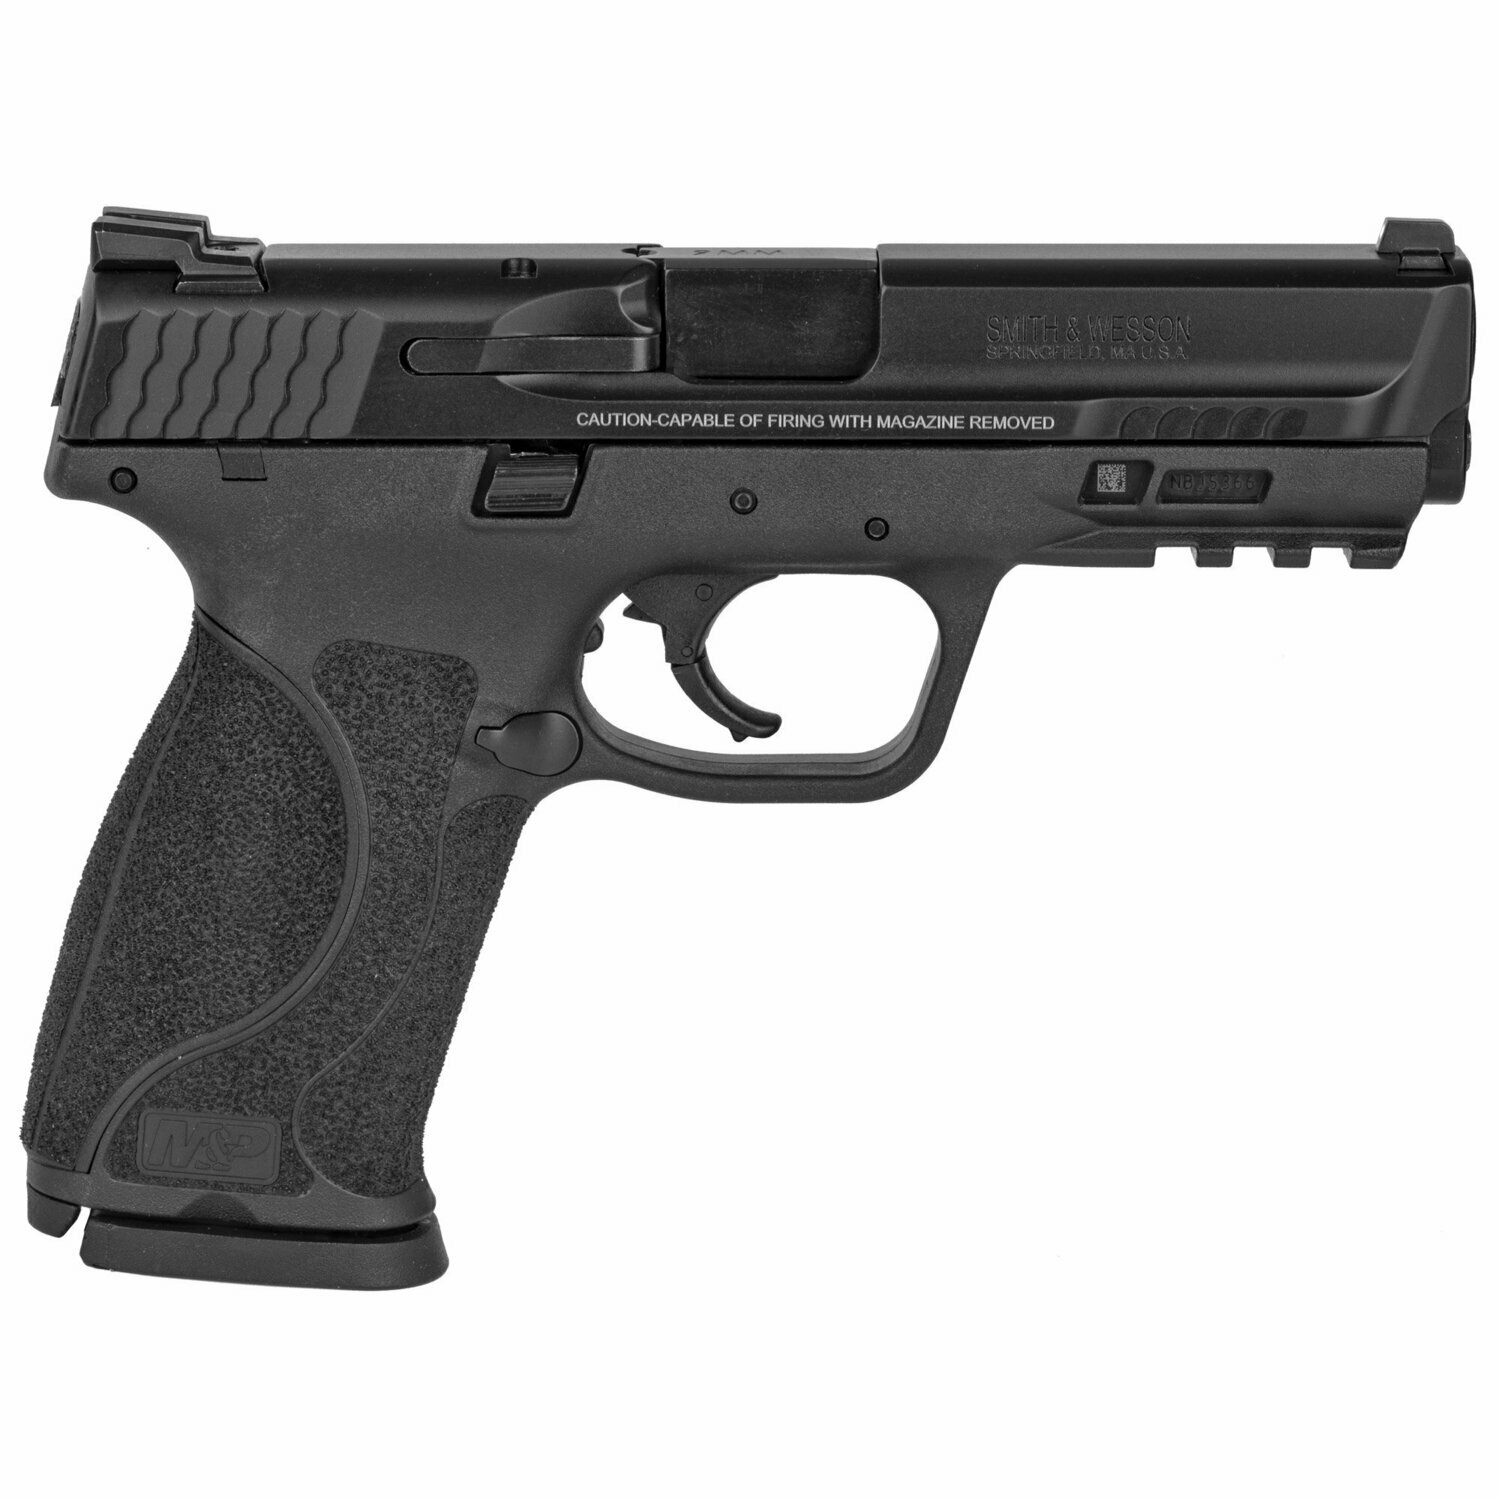 SMITH AND WESSON MP 2.0  9MM FXD SIGHTS TS